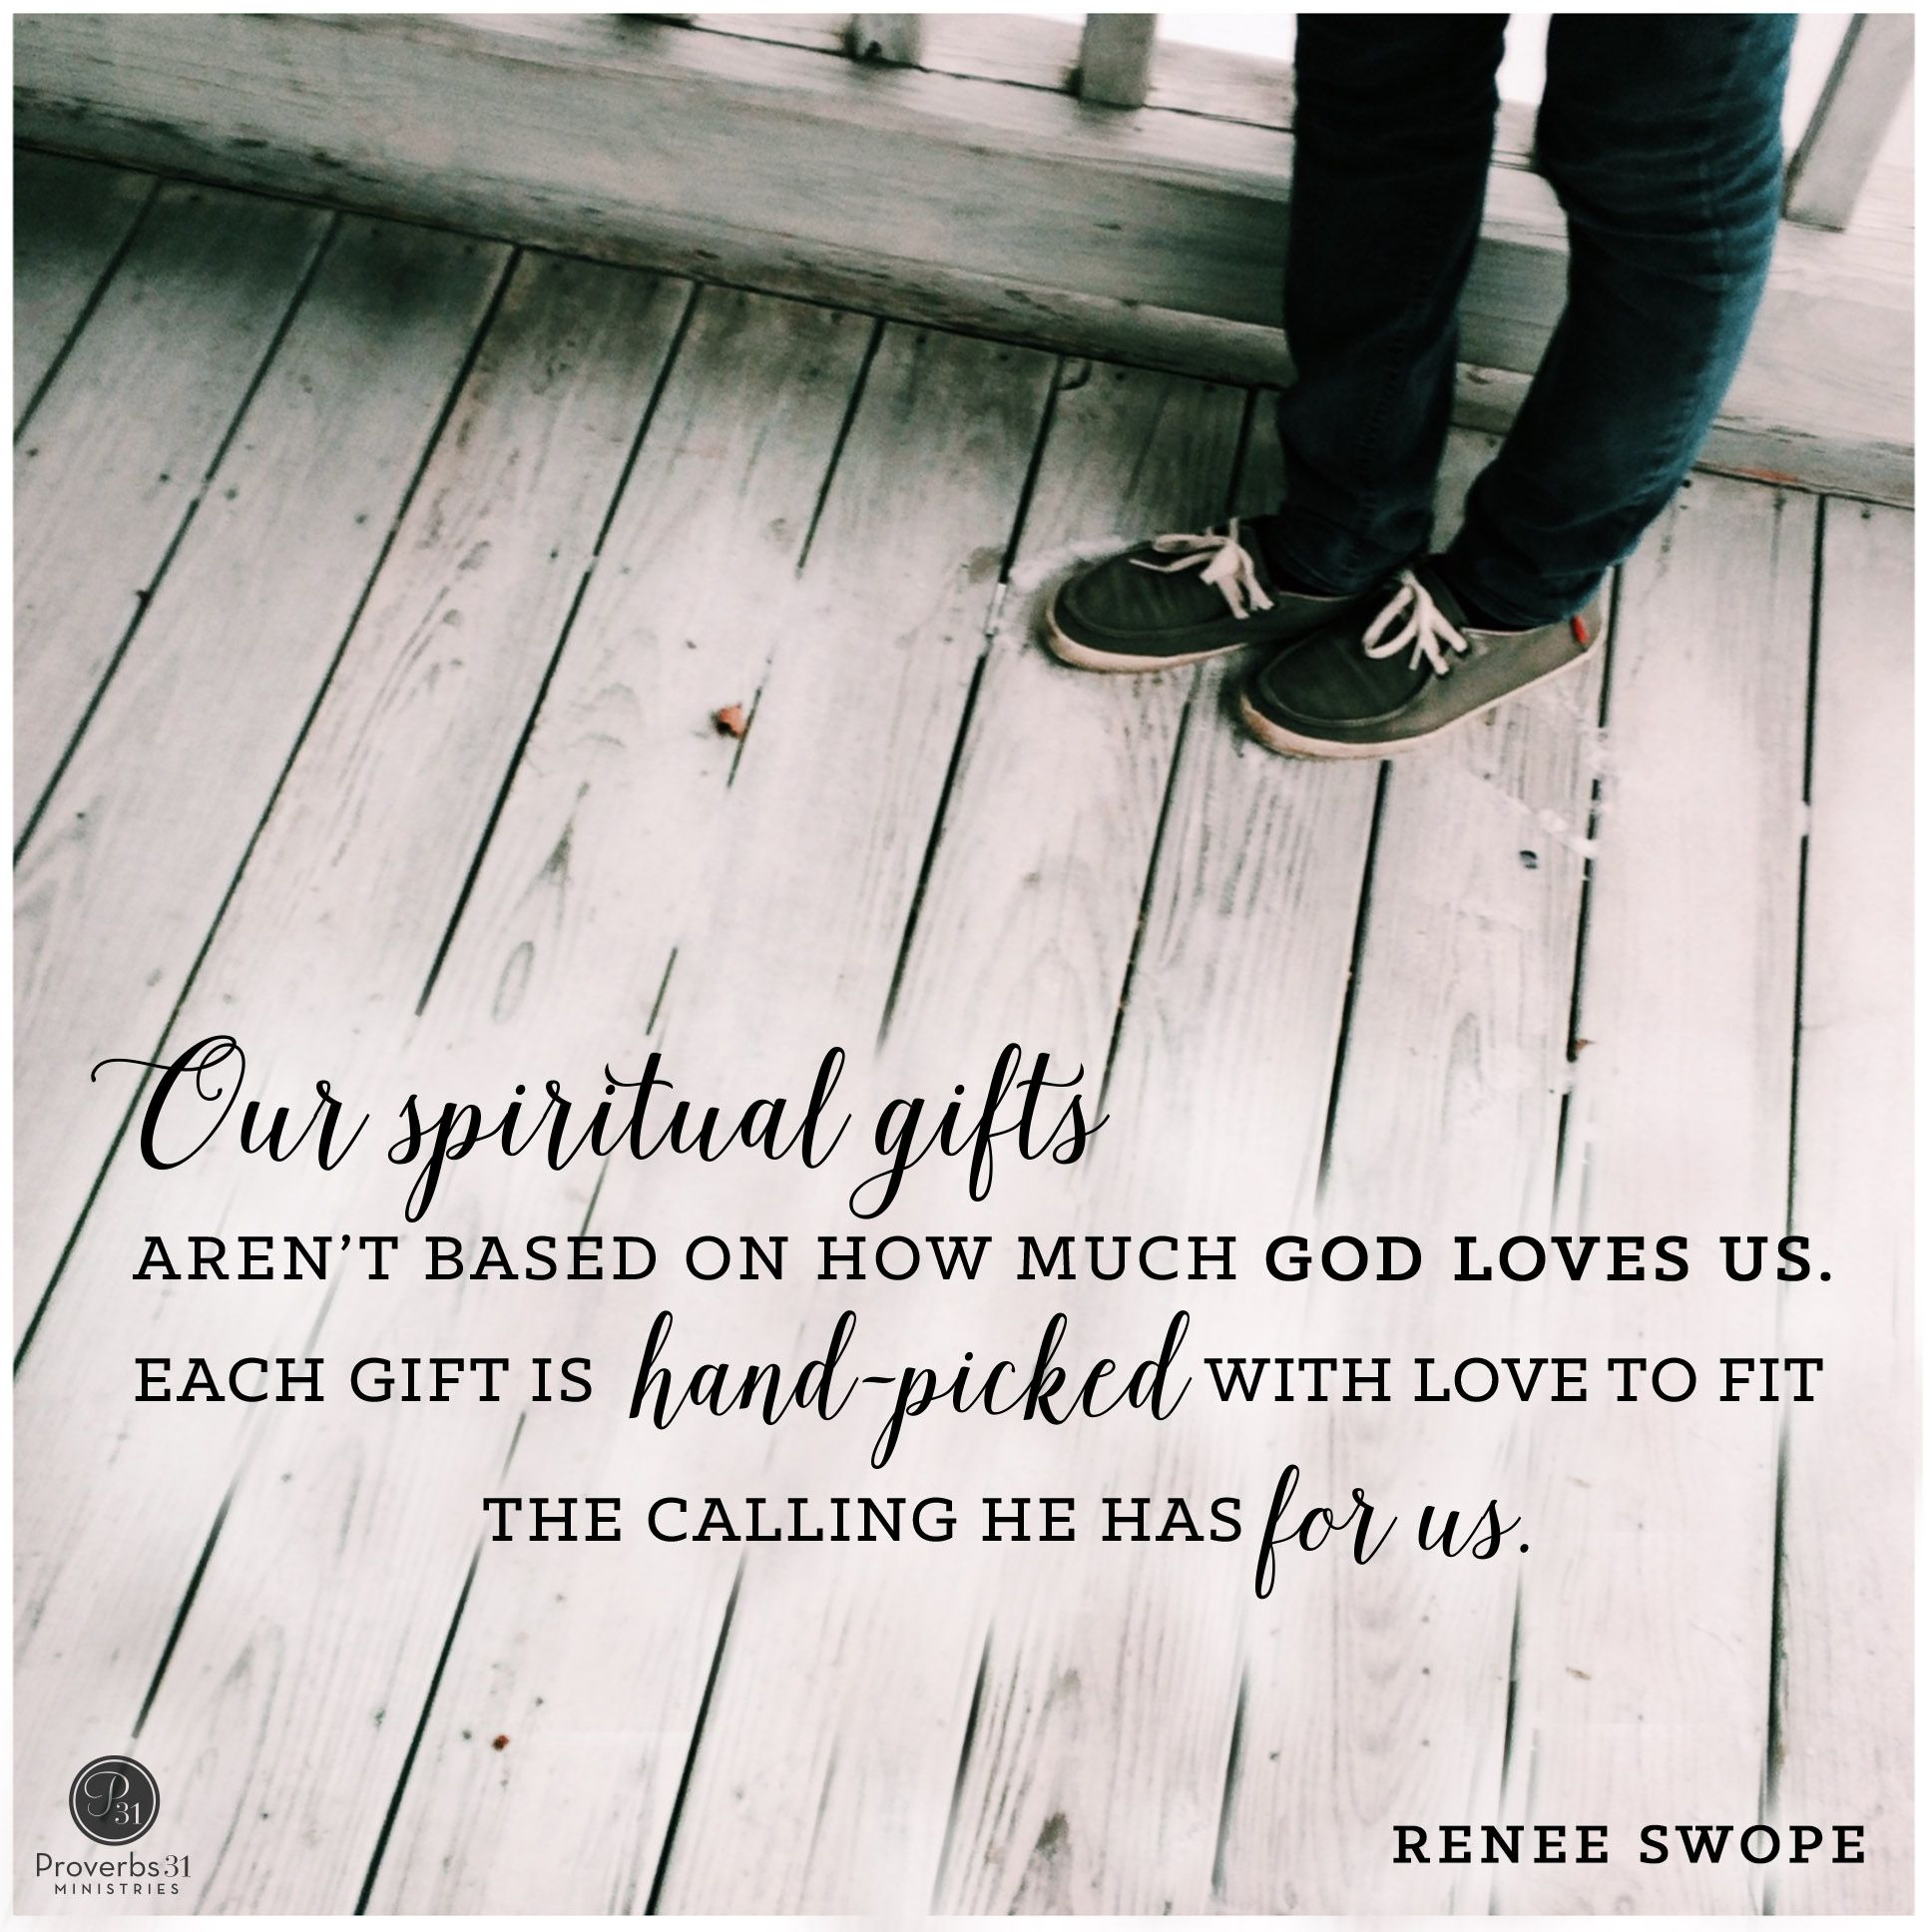 Our spiritual gifts arent based on how much god loves us each our spiritual gifts arent based on how much god loves us each negle Gallery